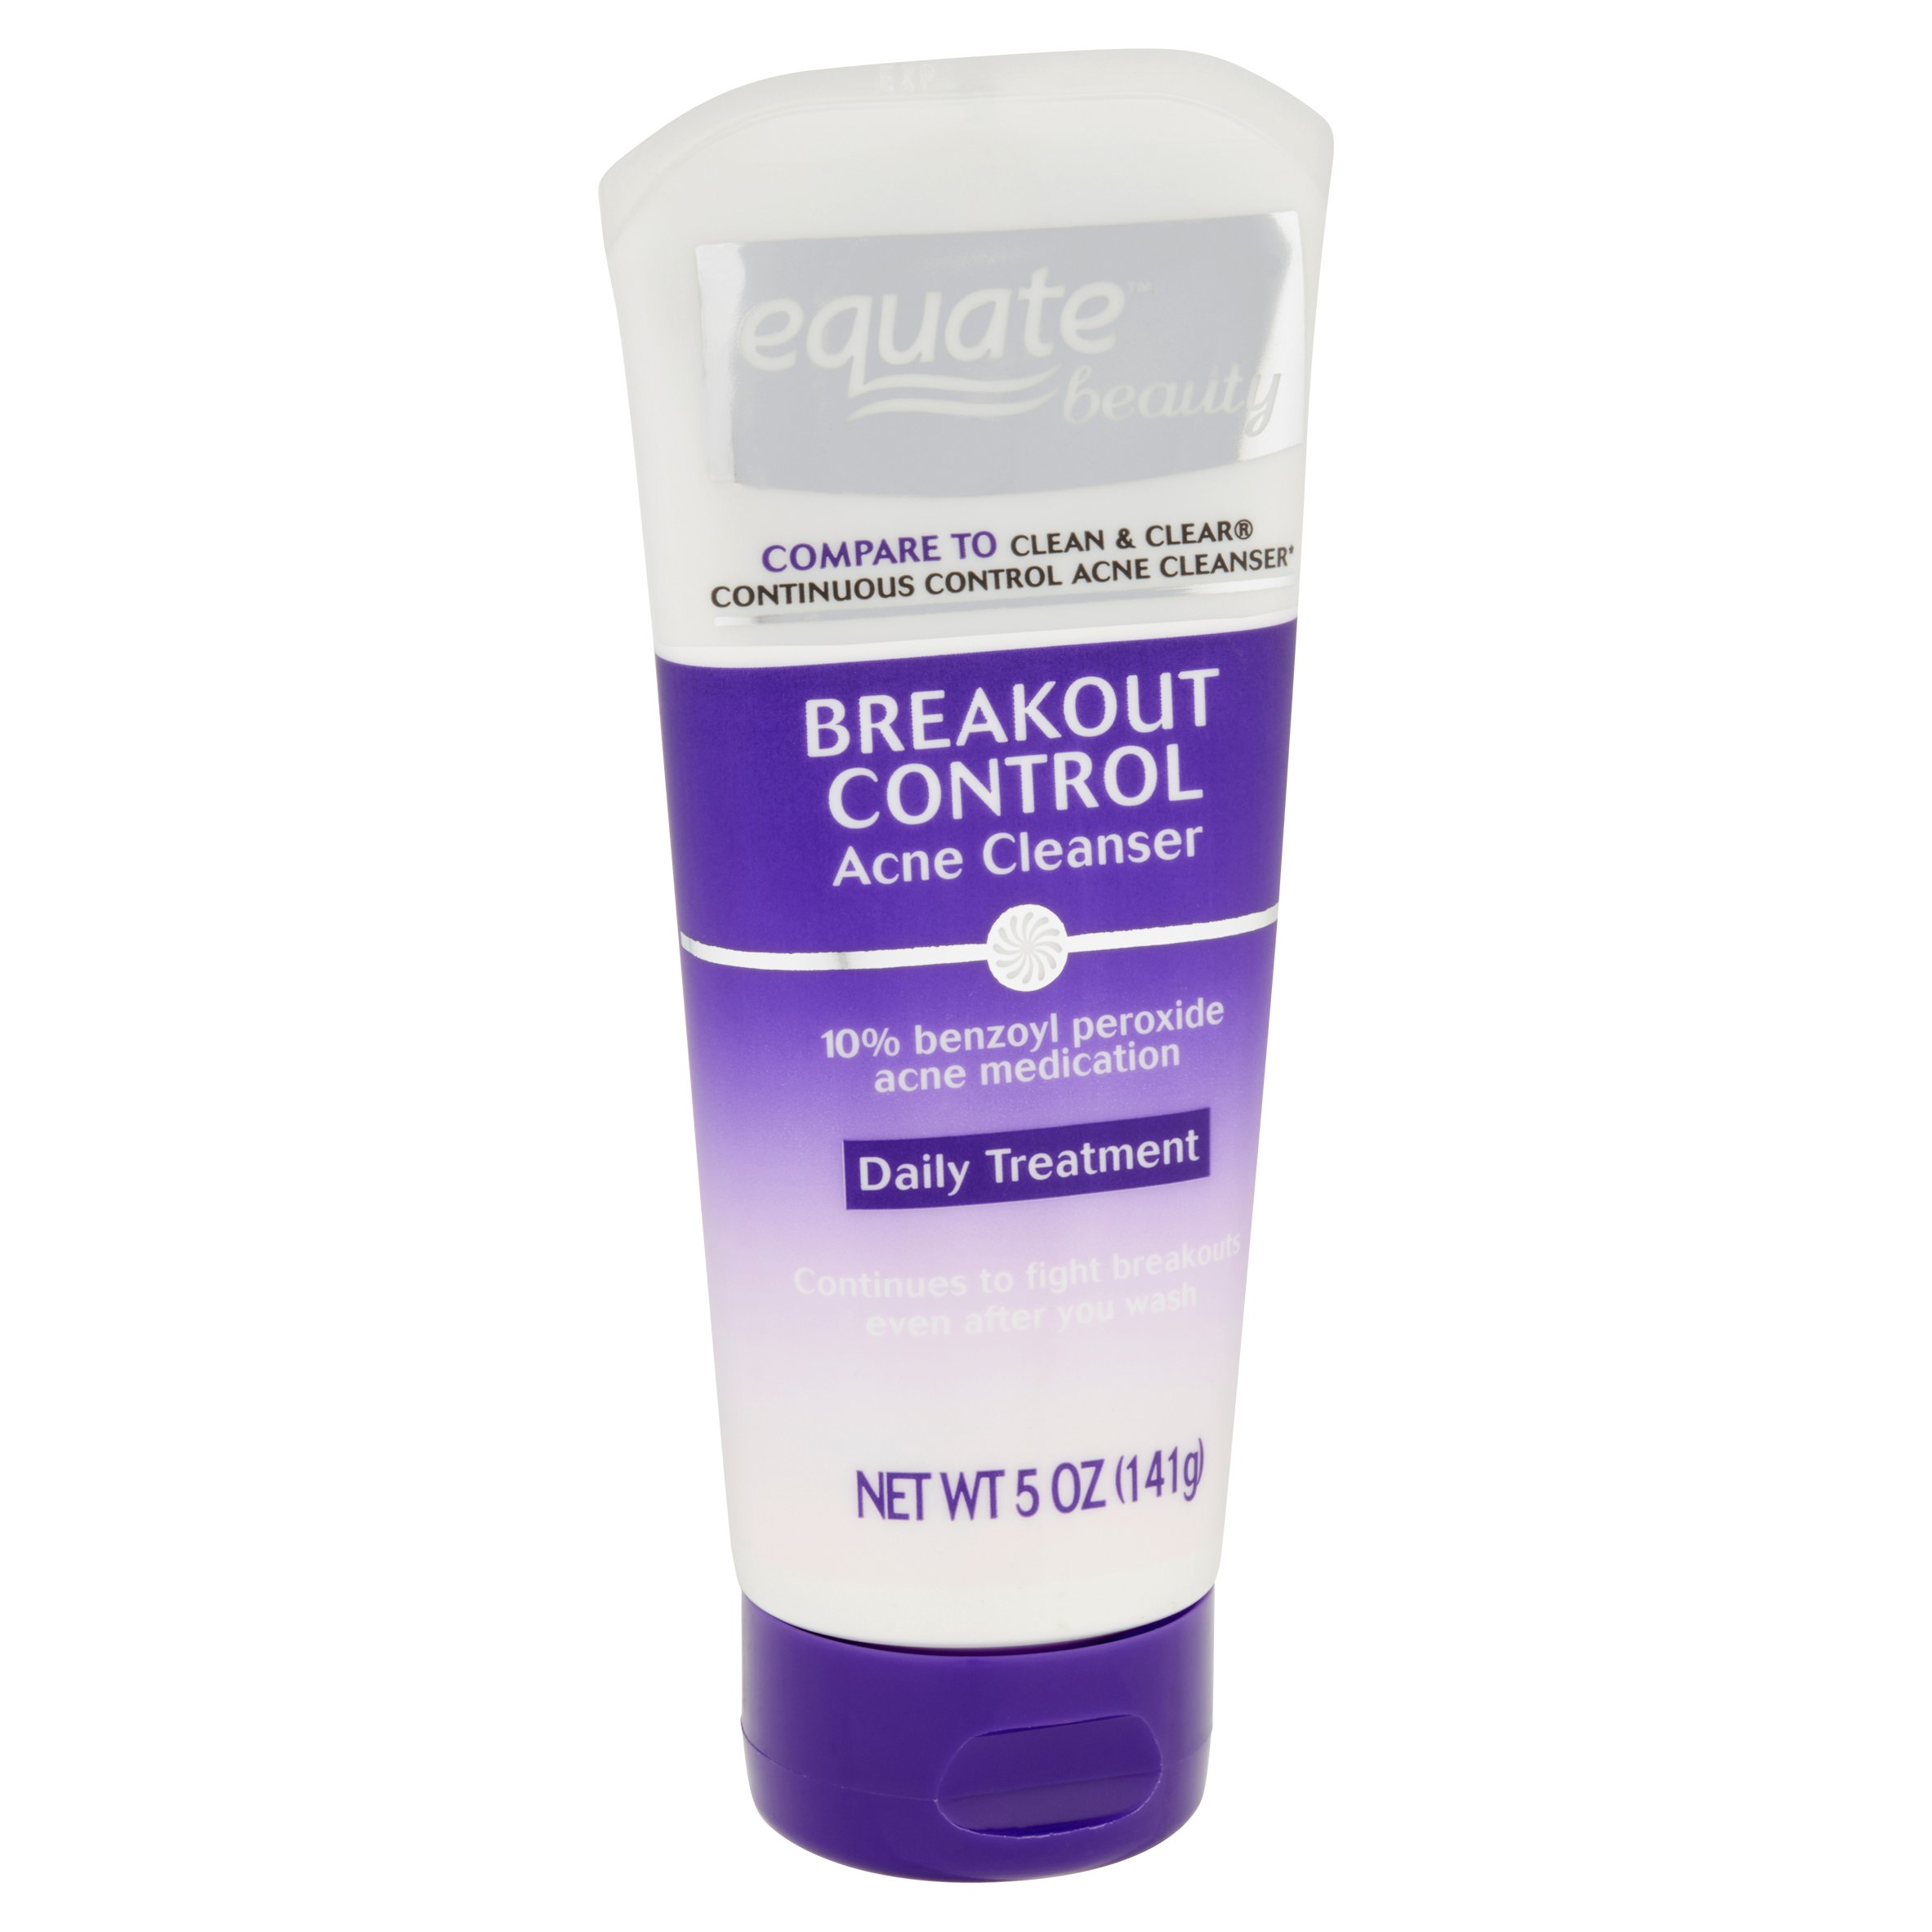 Equate Beauty Breakout Control Acne Cleanser Daily Treatment 5 Oz